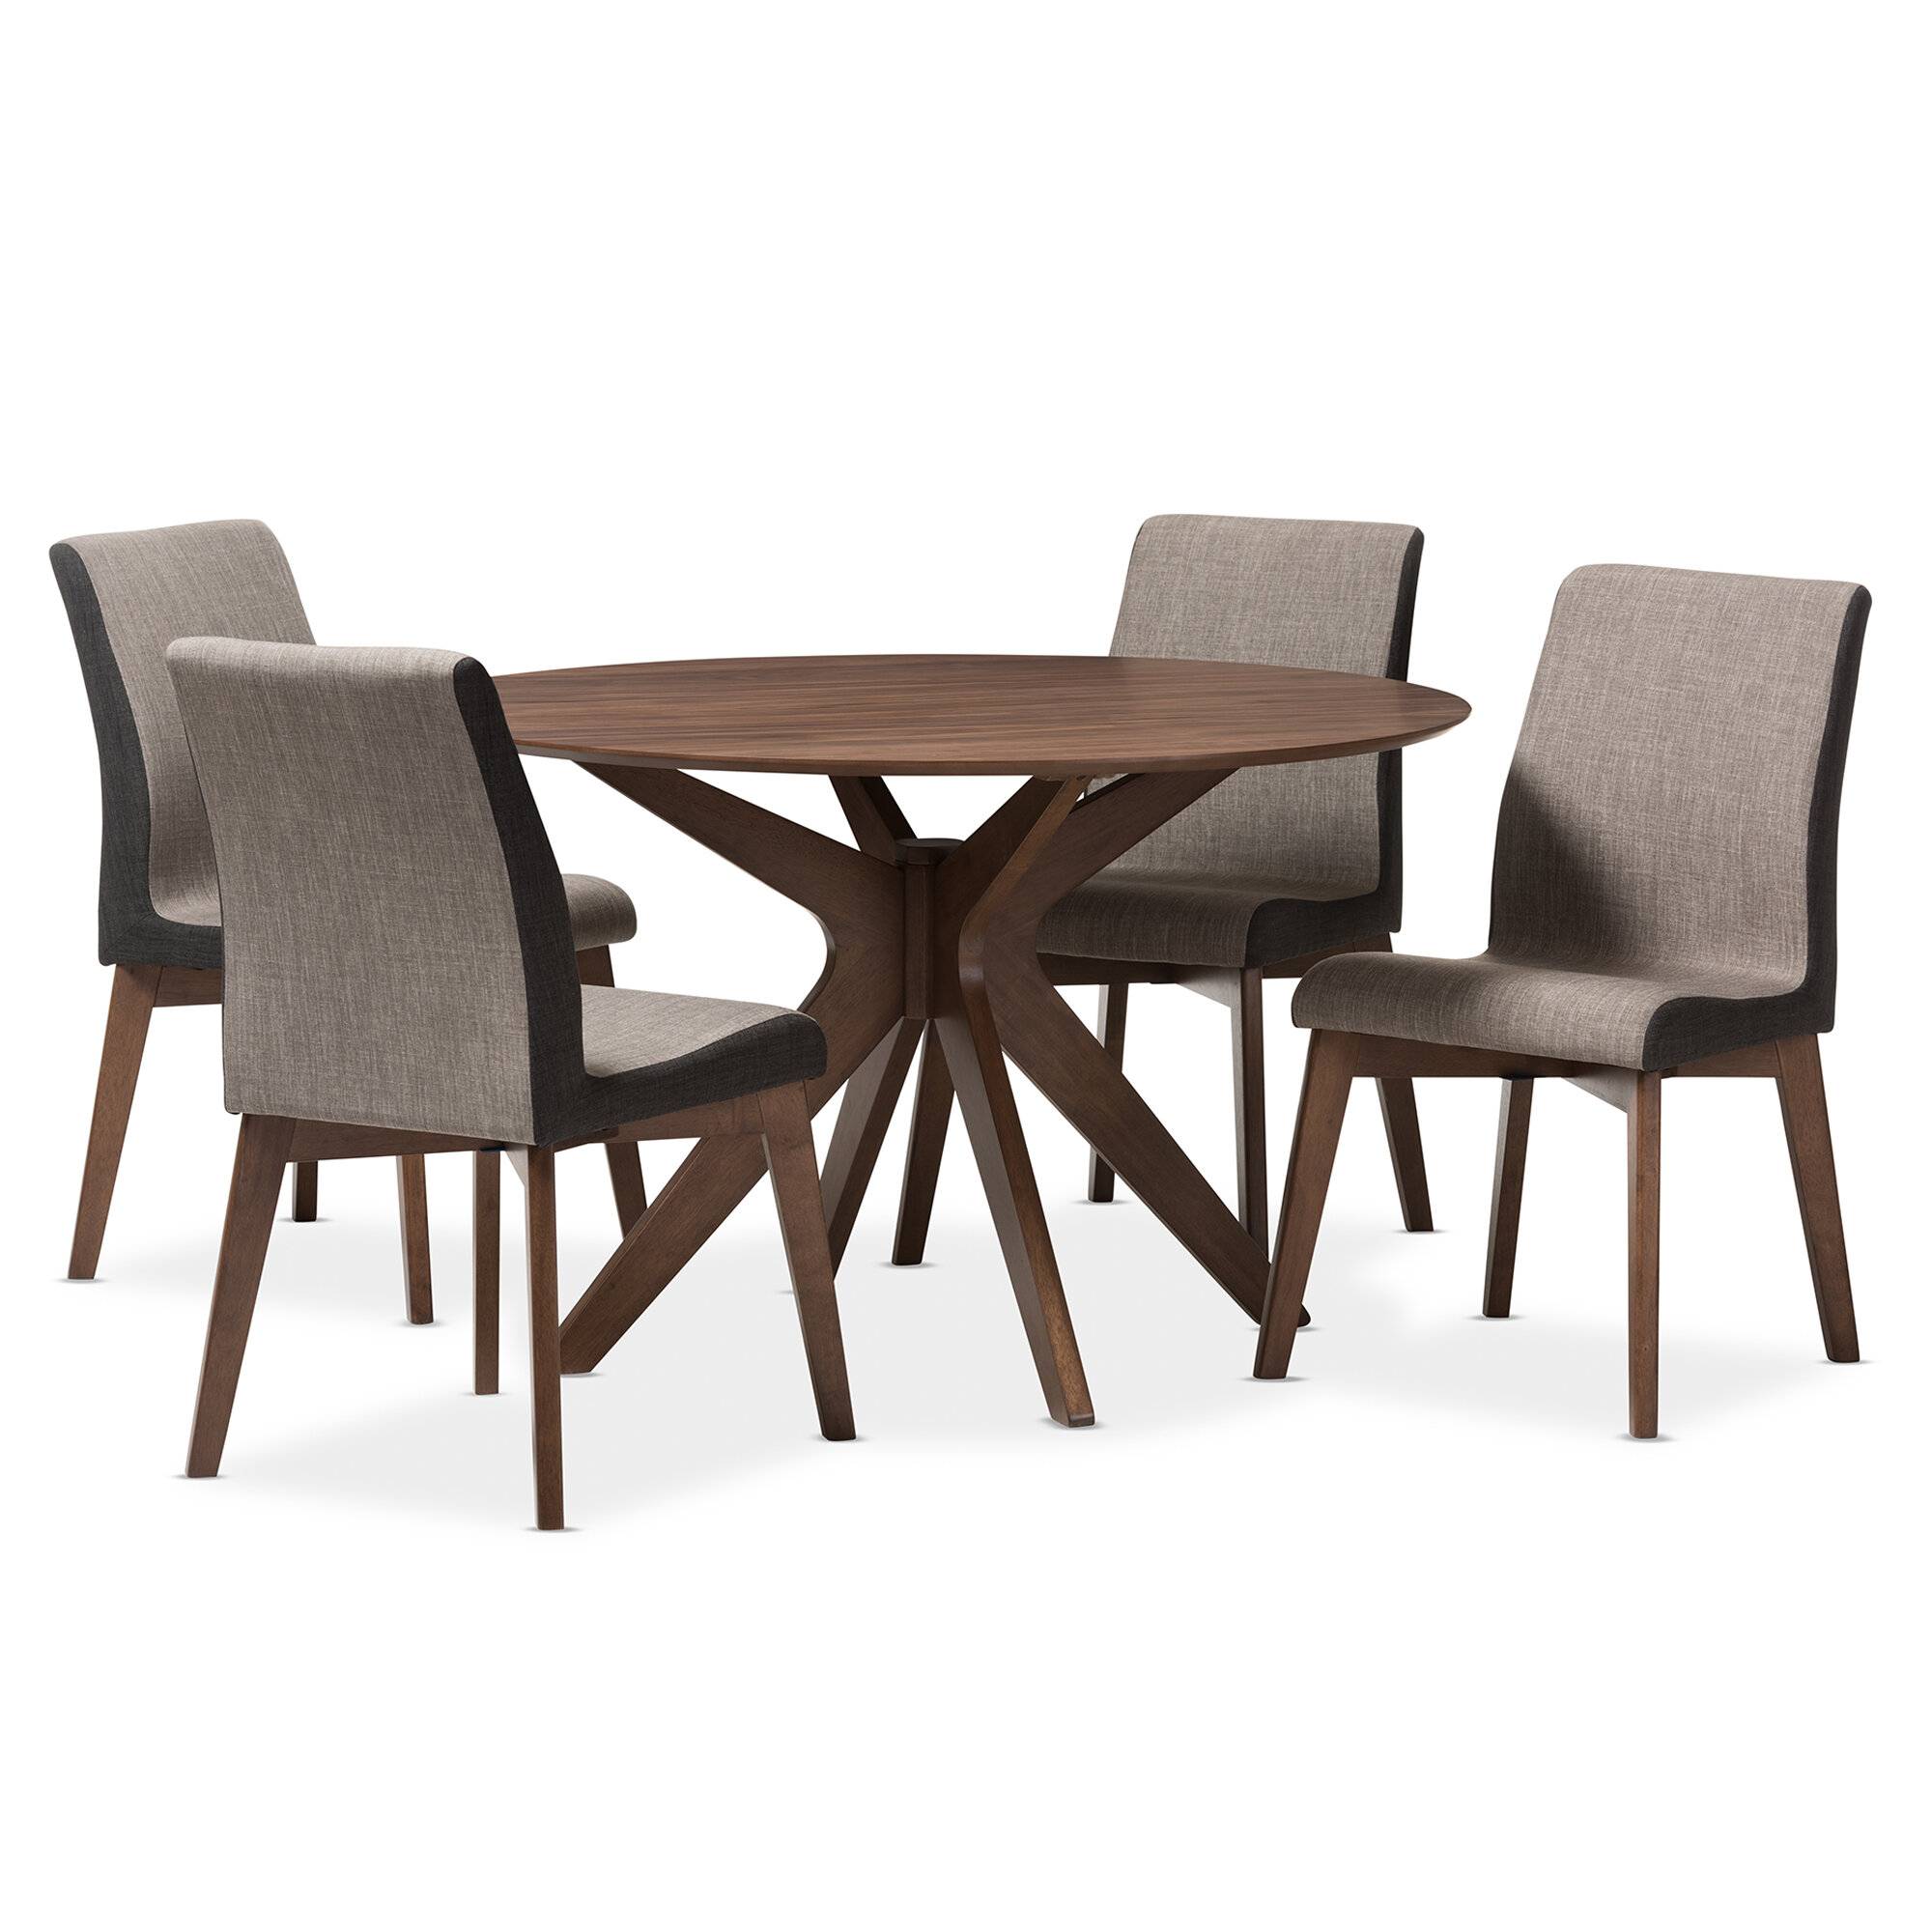 George Oliver Kimberly Mid Century Modern Wood Round 5 Piece Dining Set Reviews Wayfair